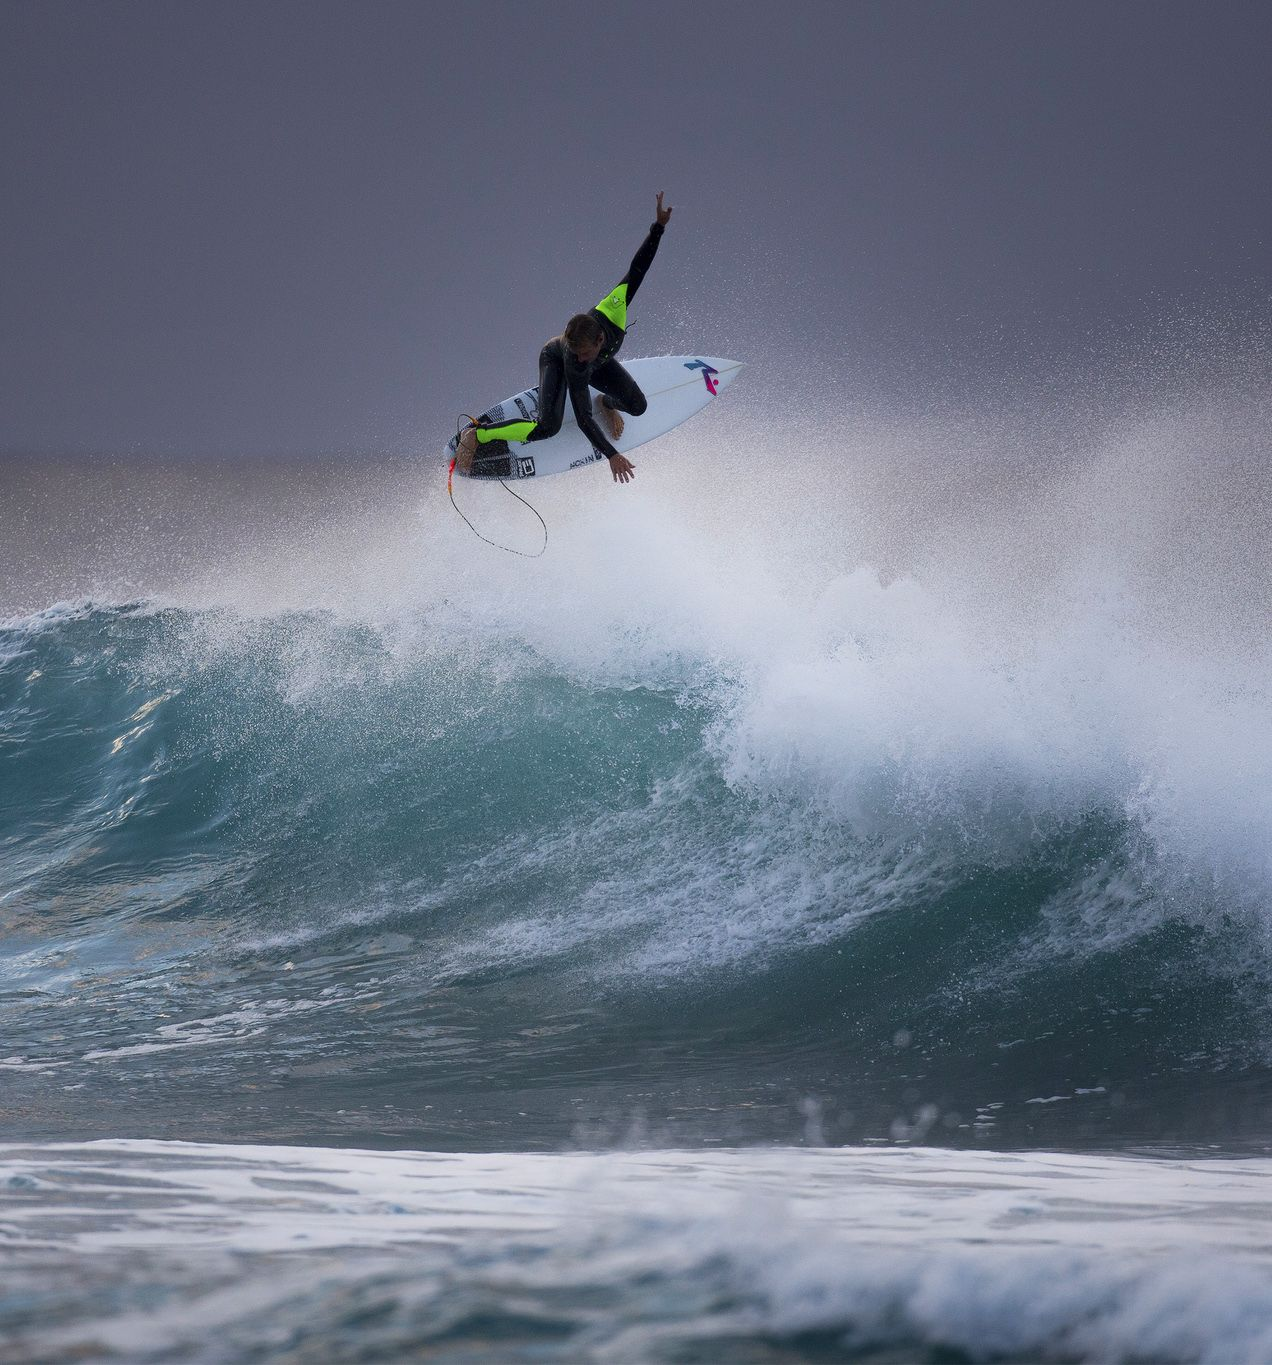 Josh Kerr Had A Fun Surf Session This Morning Ripcurlpro Bellsbeach World Surf League Surf Competition Surfing